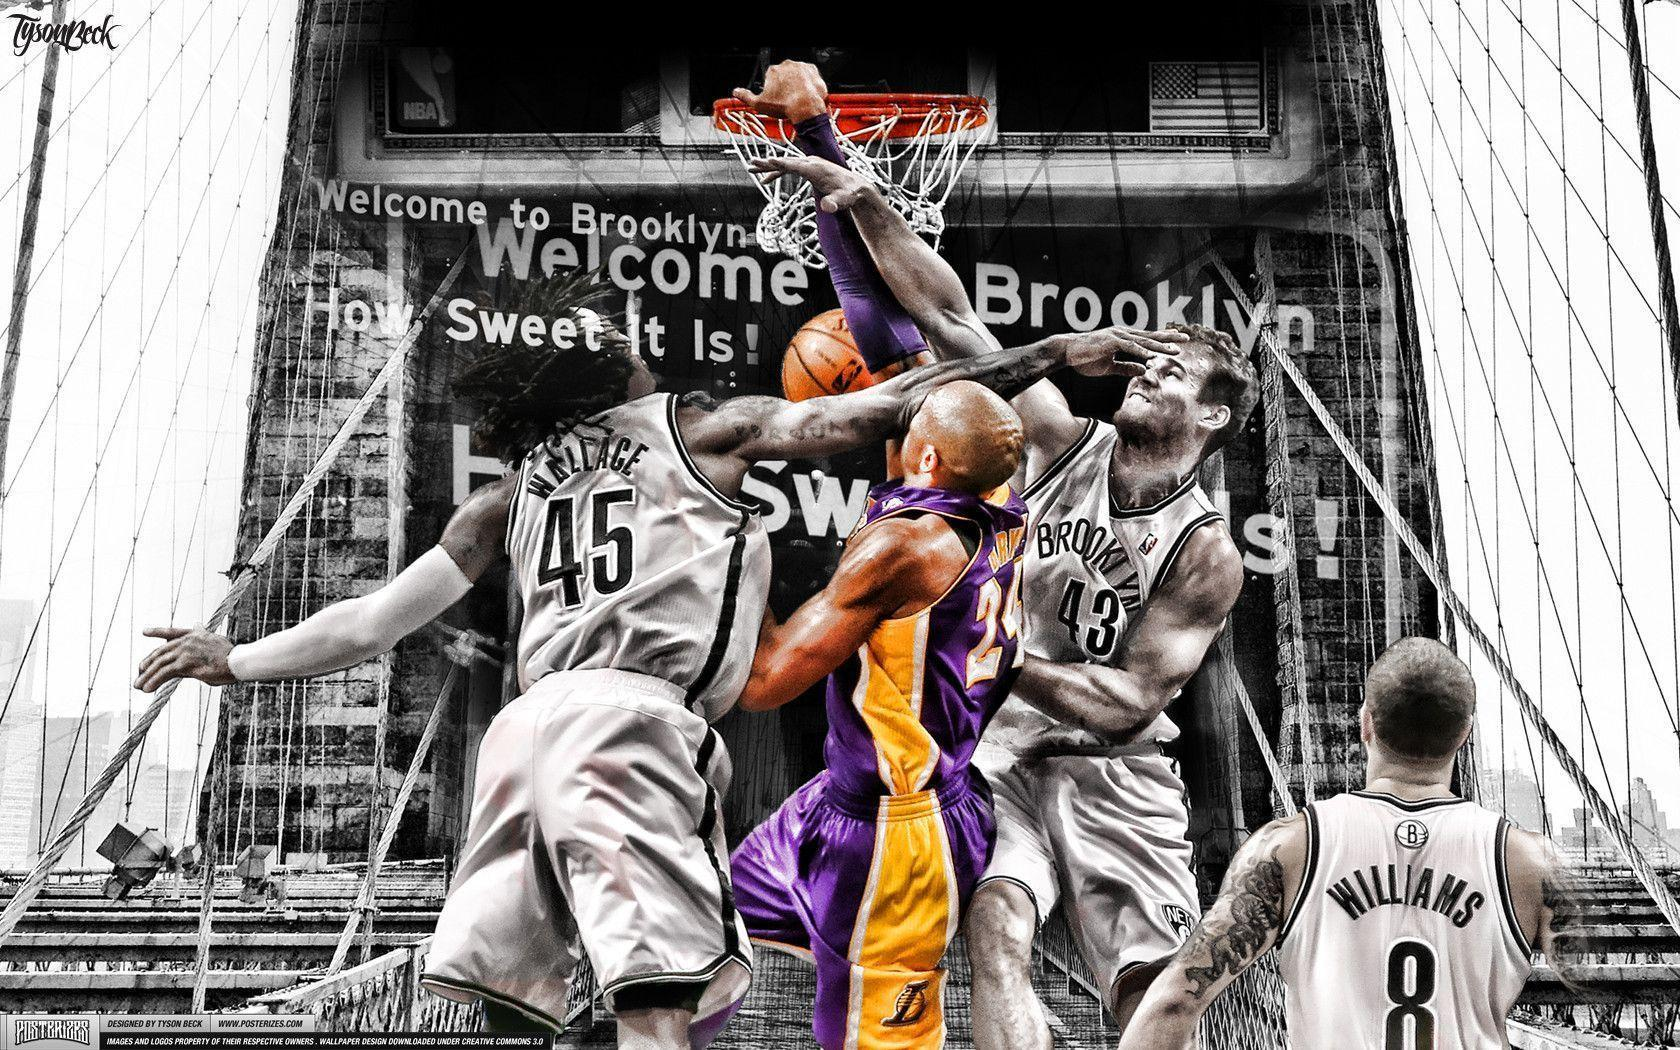 Kobe Bryant dunks on Brooklyn Wallpapers